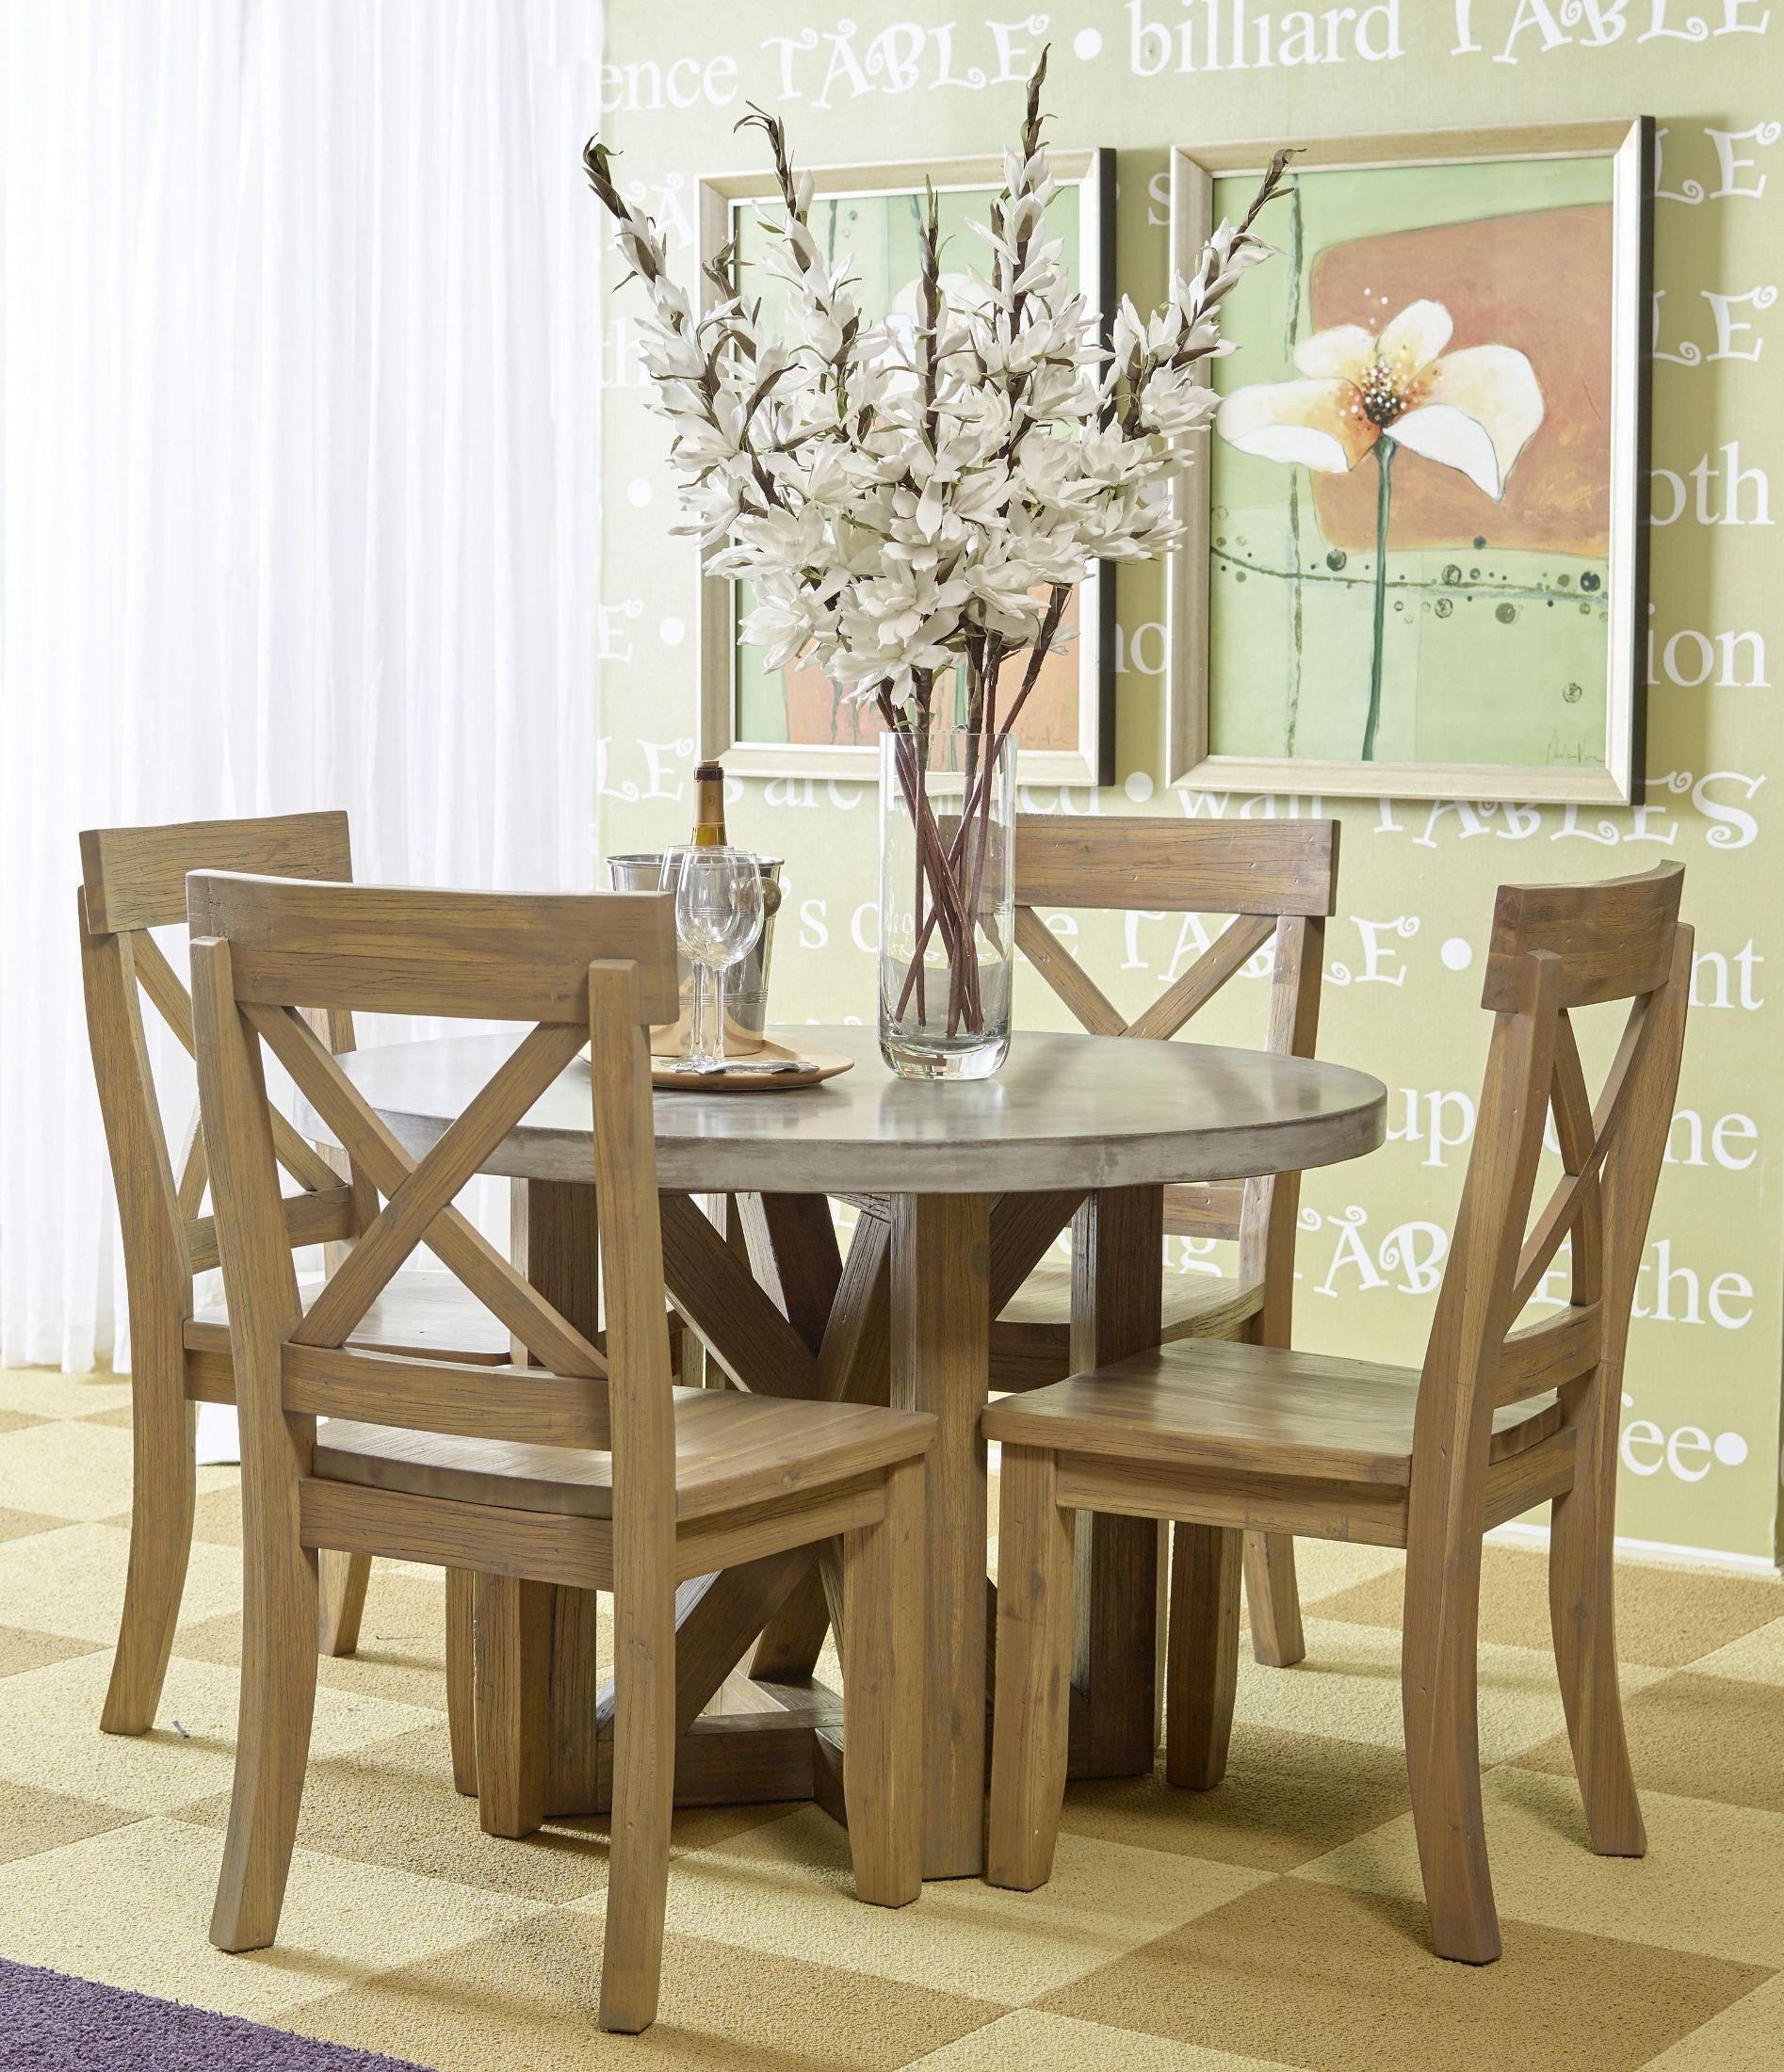 Concrete Dining Room Table: Boulder Ridge Concrete Round Dining Room Set, 757-43TBKT